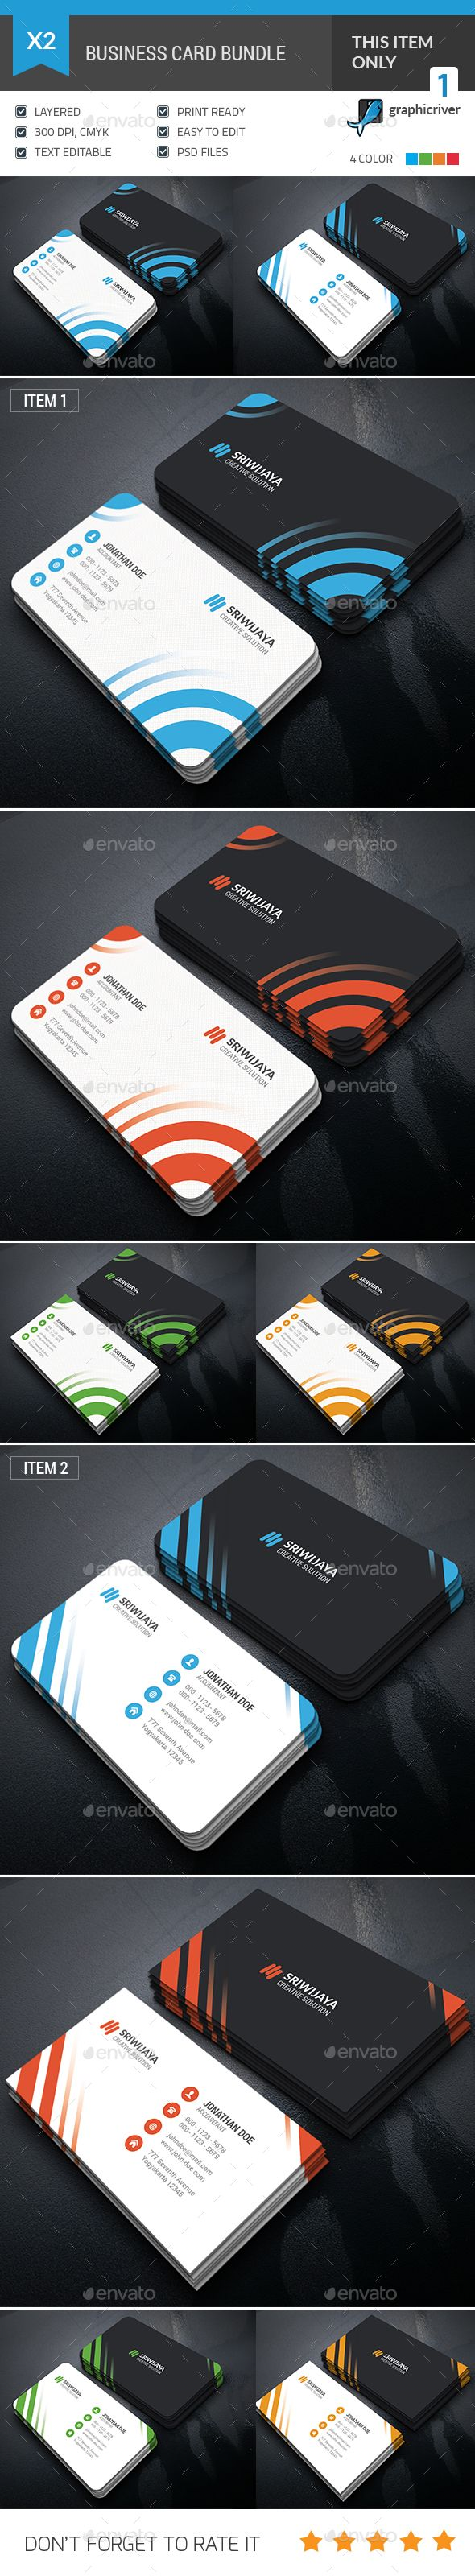 363 best design business card formal images on pinterest business card bundle photoshop psd print business available here https reheart Image collections